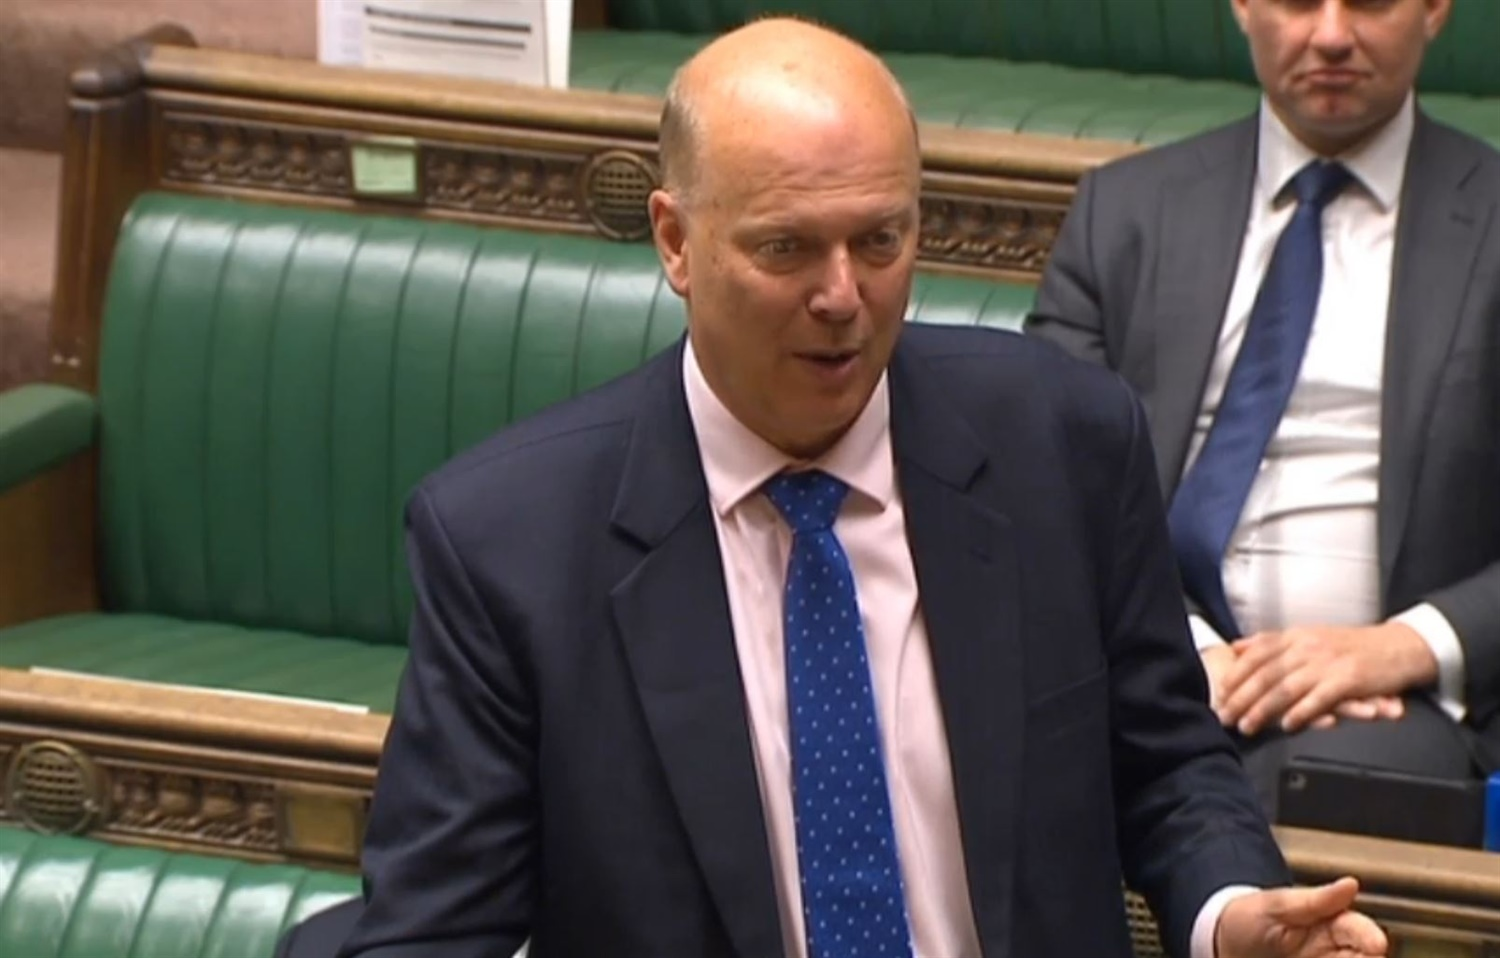 Grayling speech: inquiry launched, passengers to receive compensation